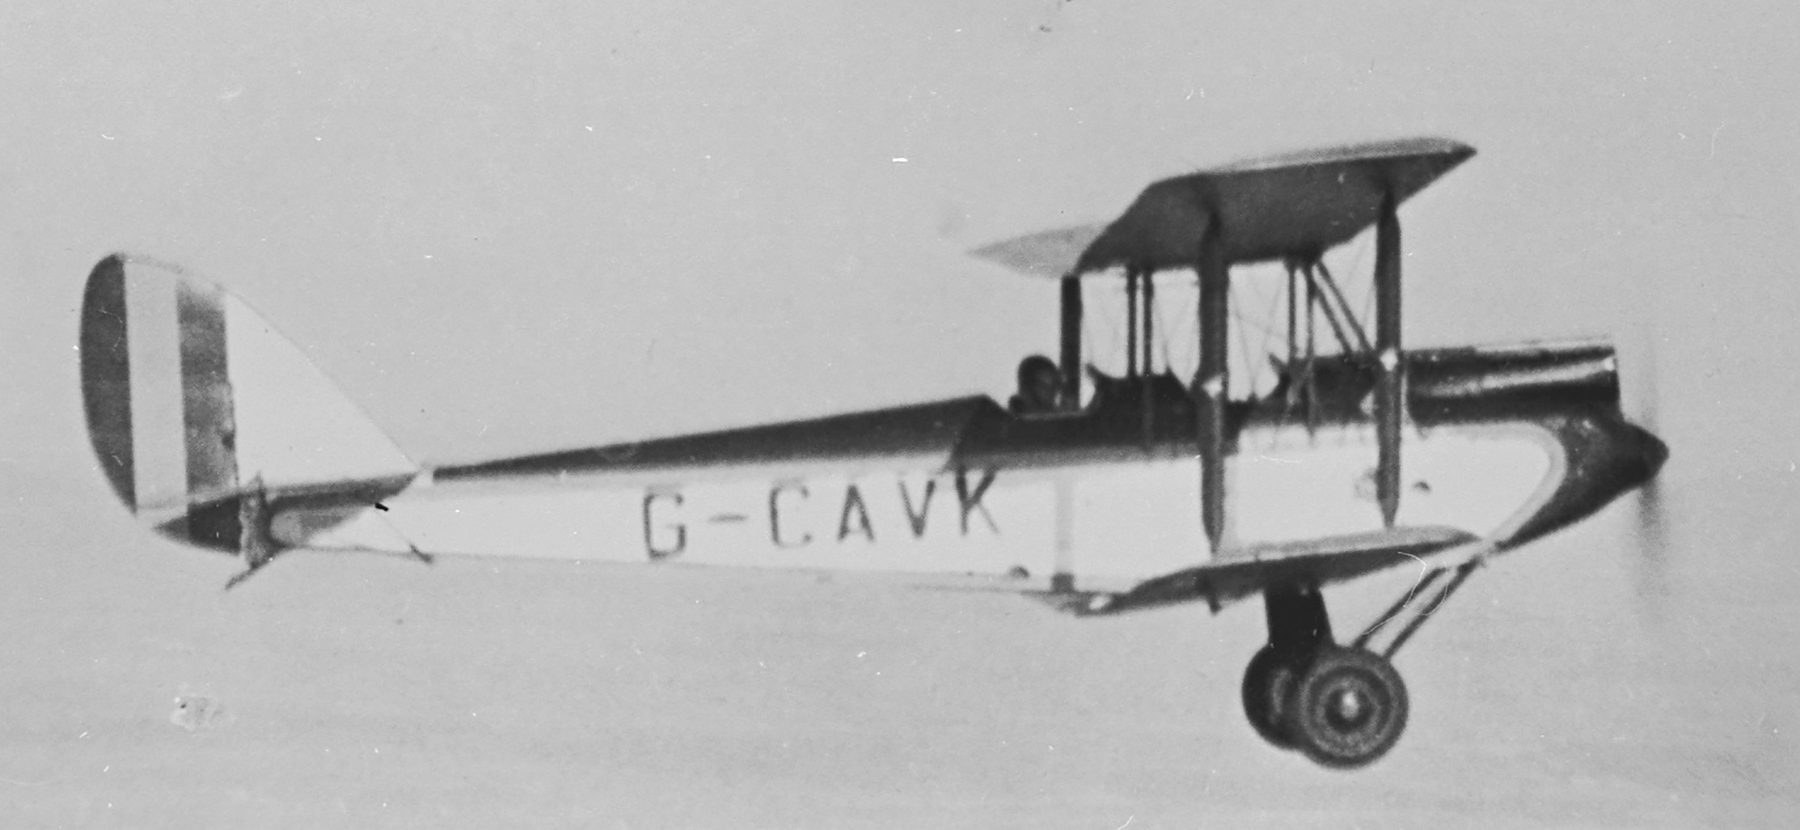 A de Havilland Gipsy Moth in flight. PHOTO: Courtesy of Comox Air Force Museum